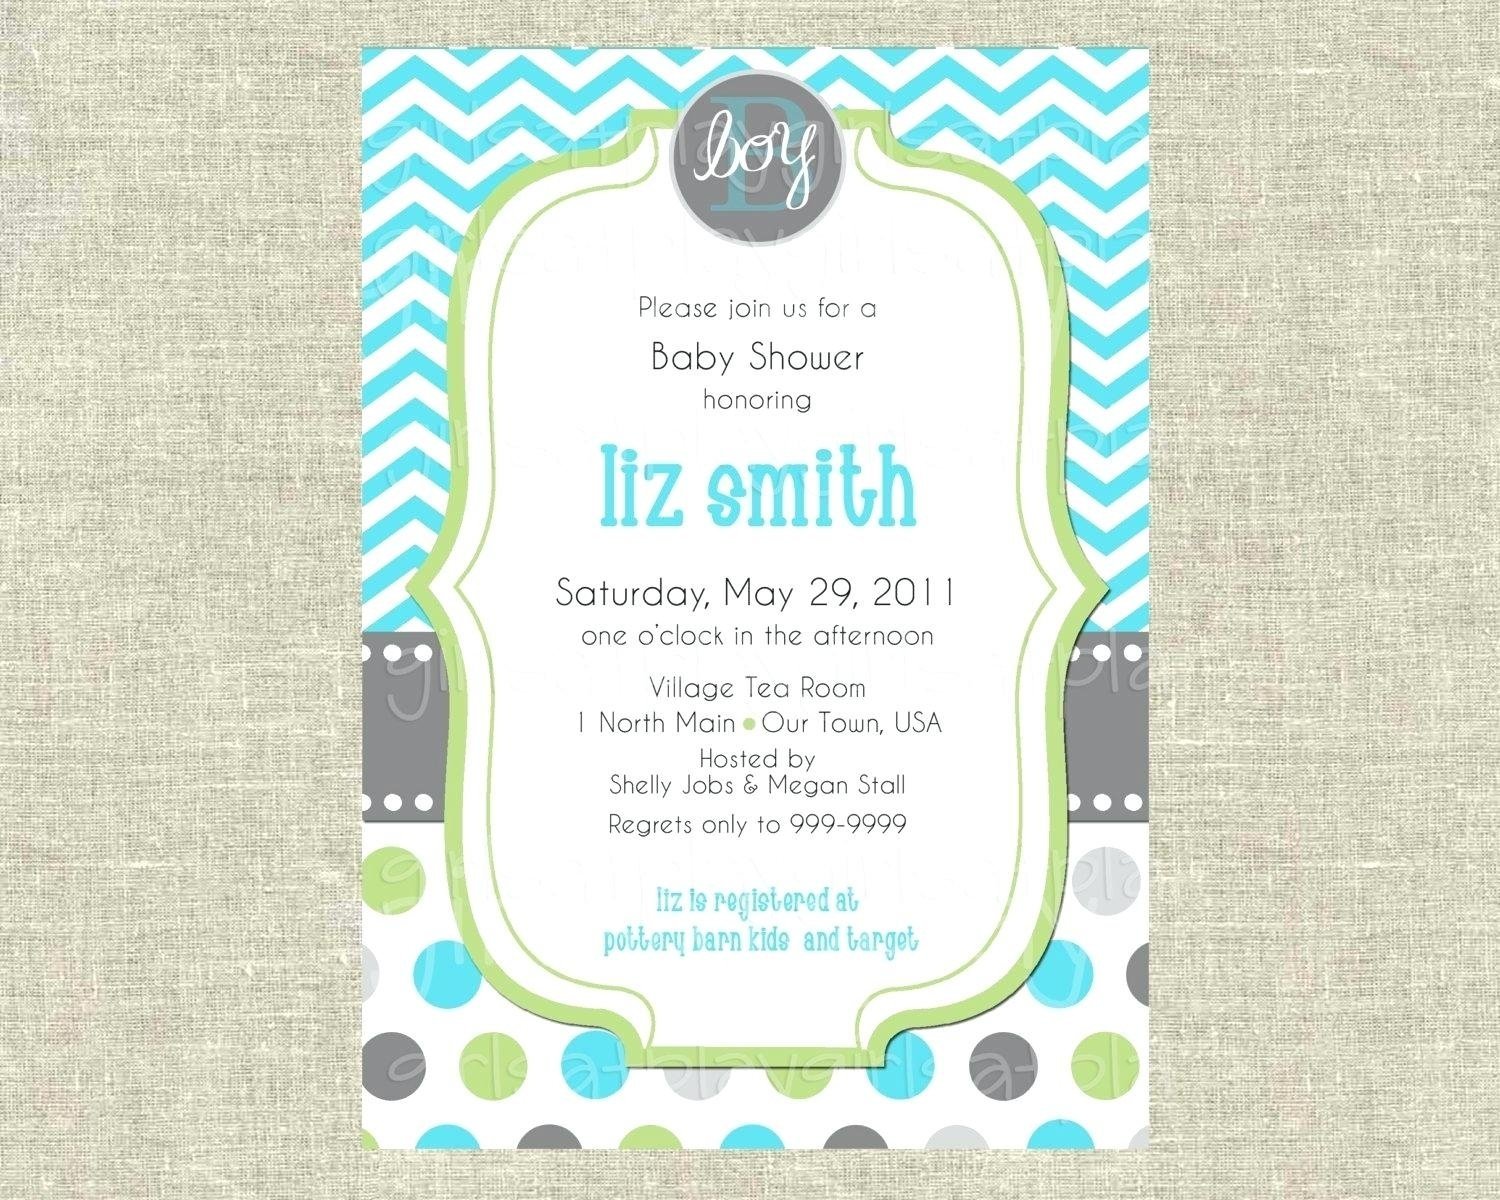 10 perfect save the date email ideas